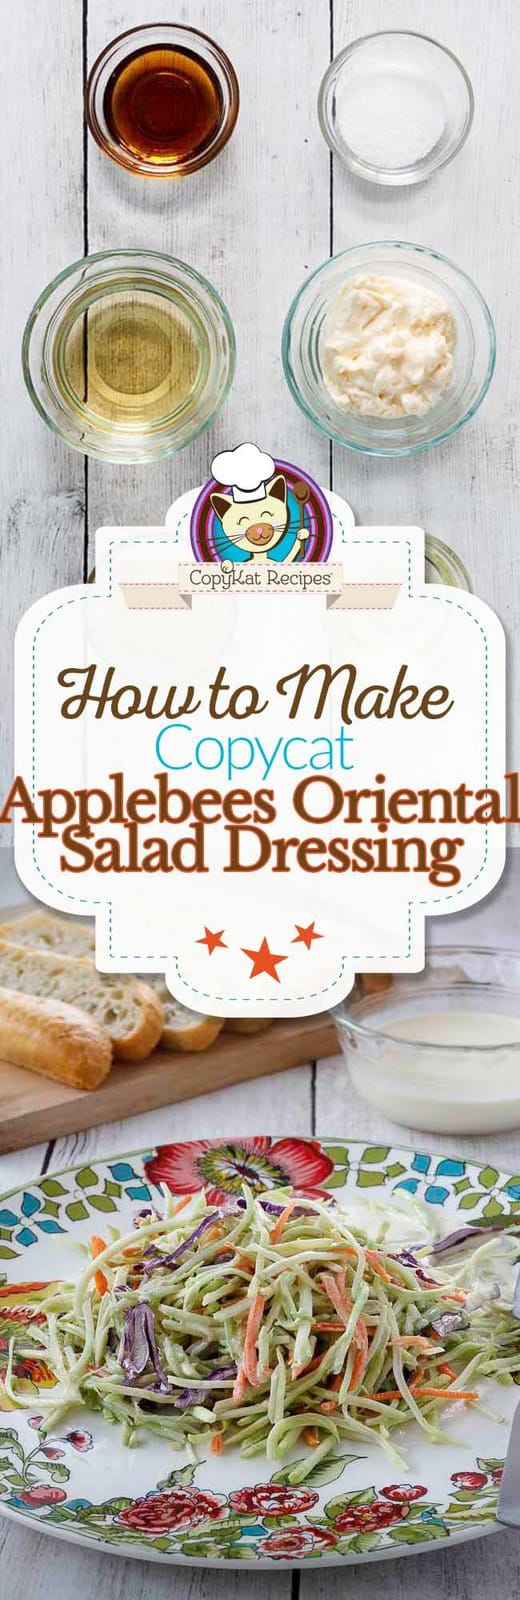 Applebees Oriental Salad Dressing - you can make this at home with ingredients you have around your house.